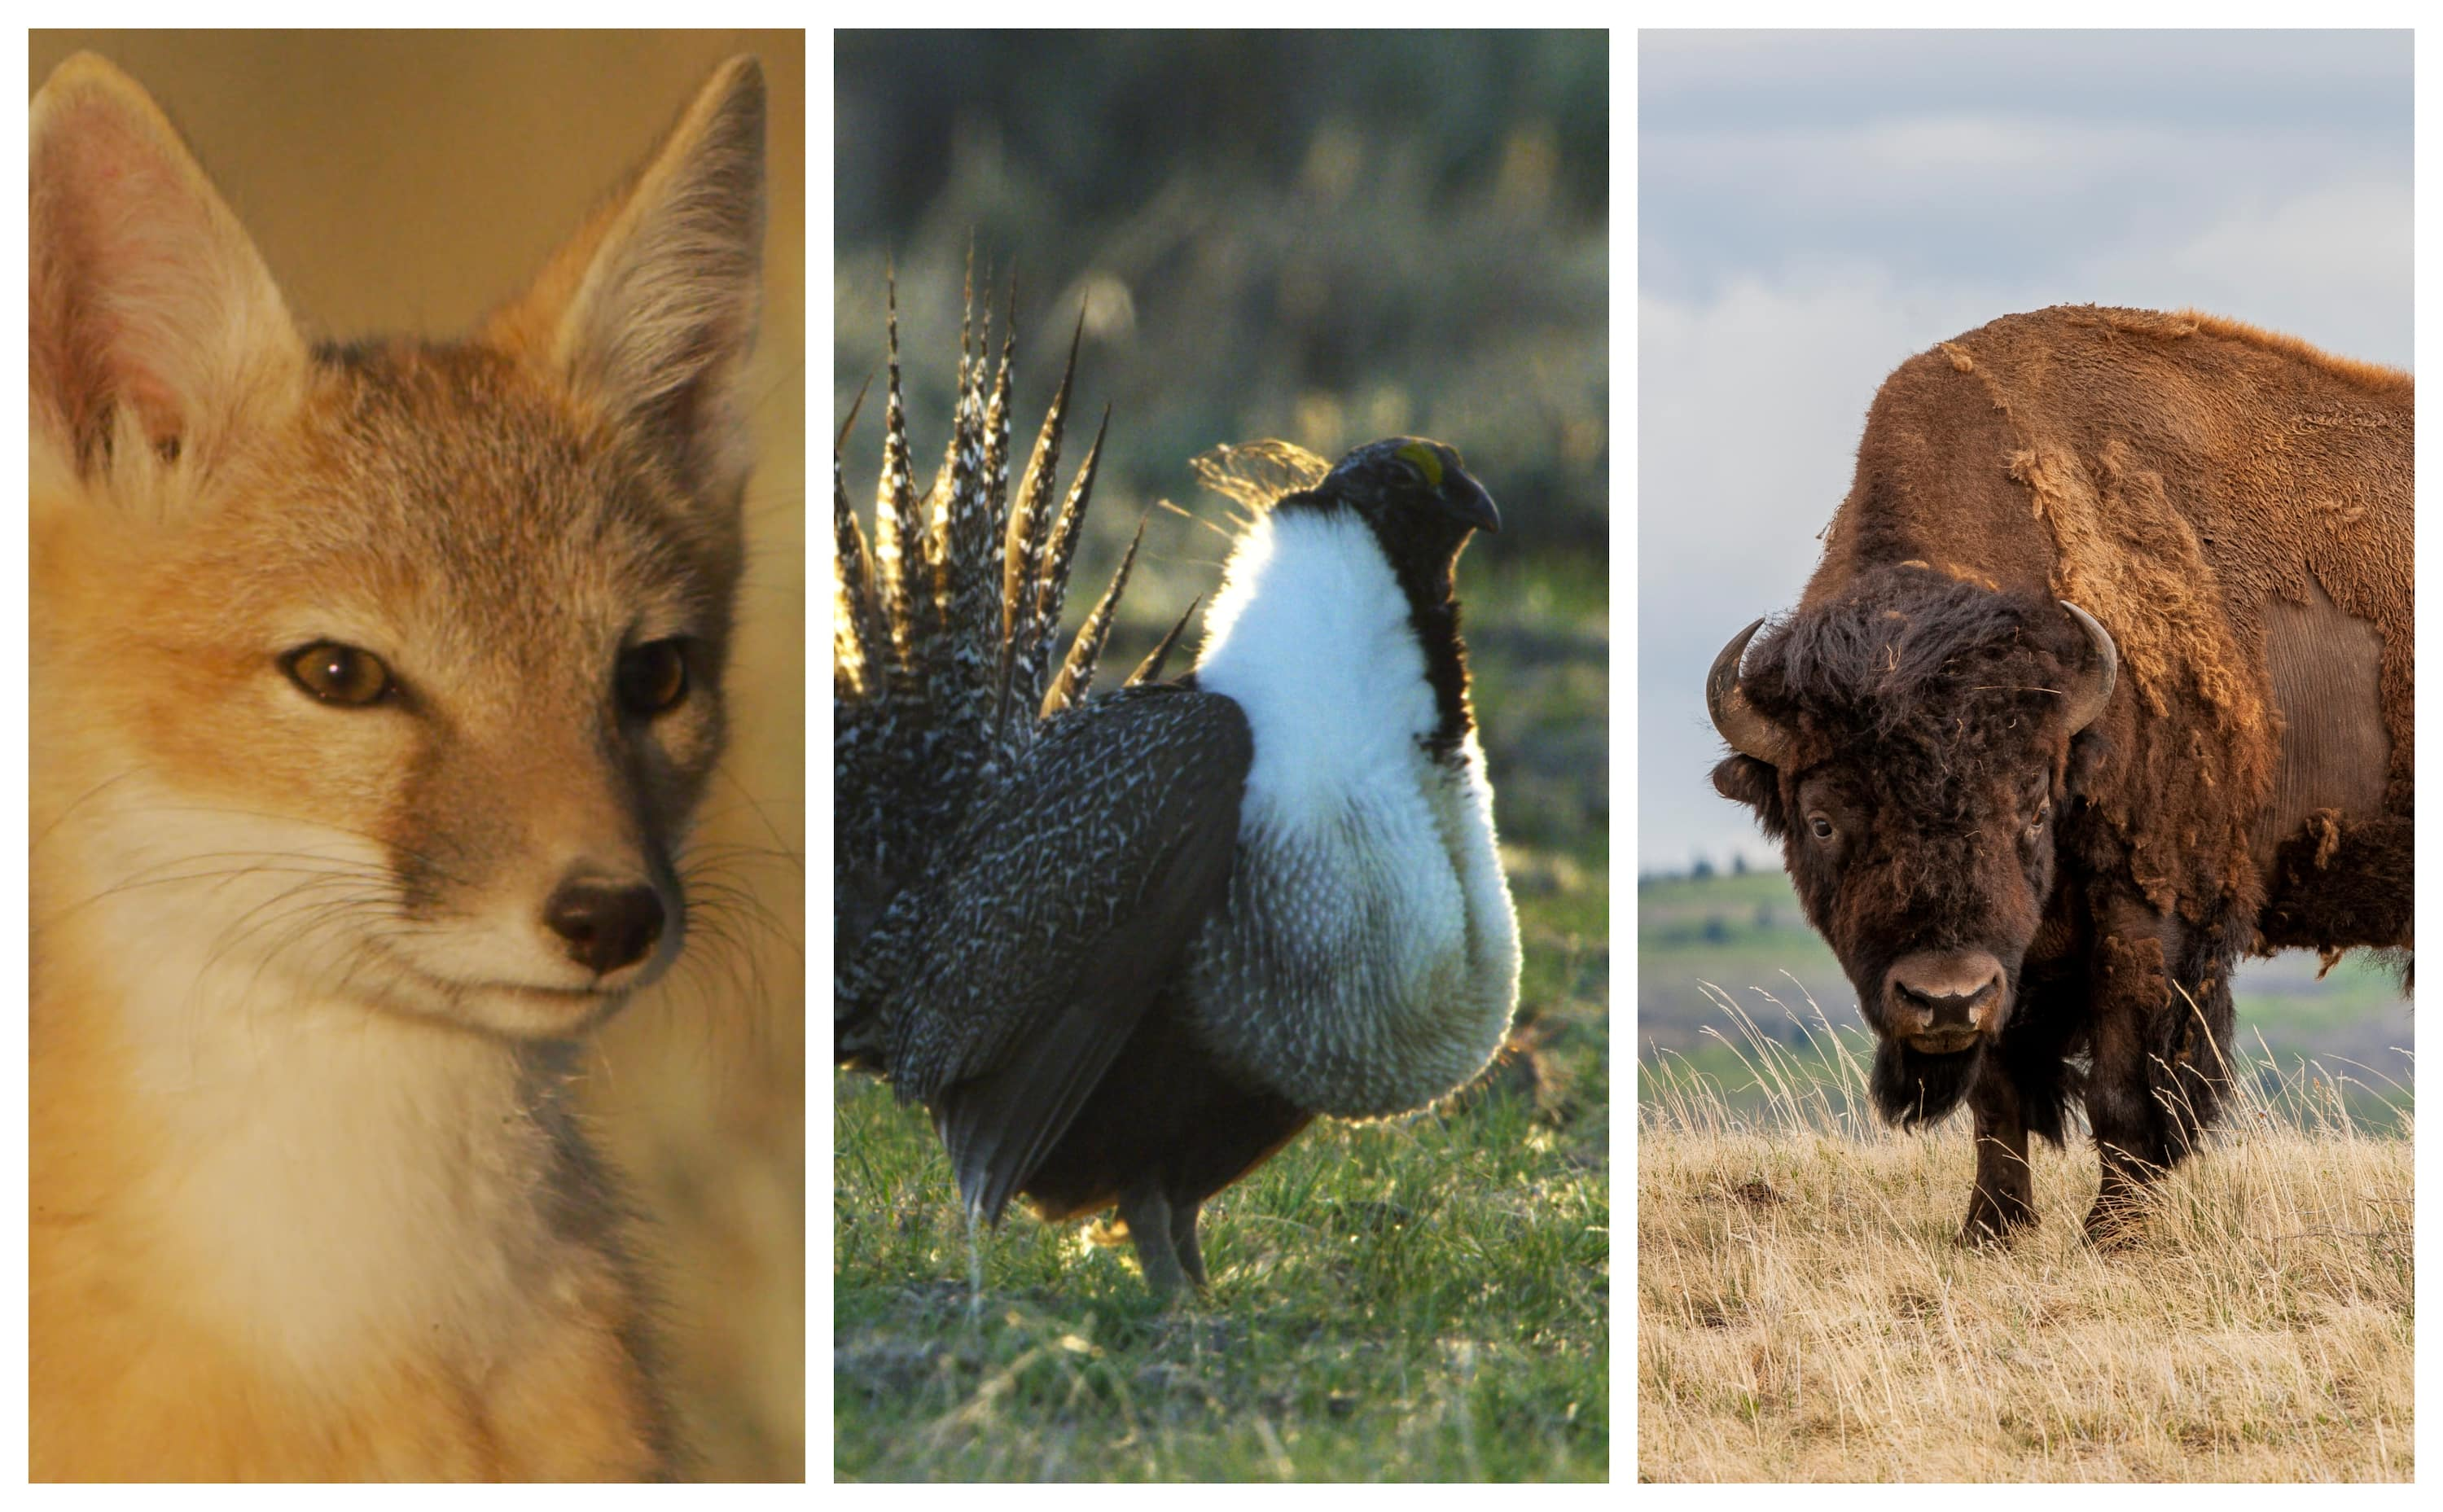 Ferrets, foxes and the fringed orchid: Species that suffer when grasslands are threatened